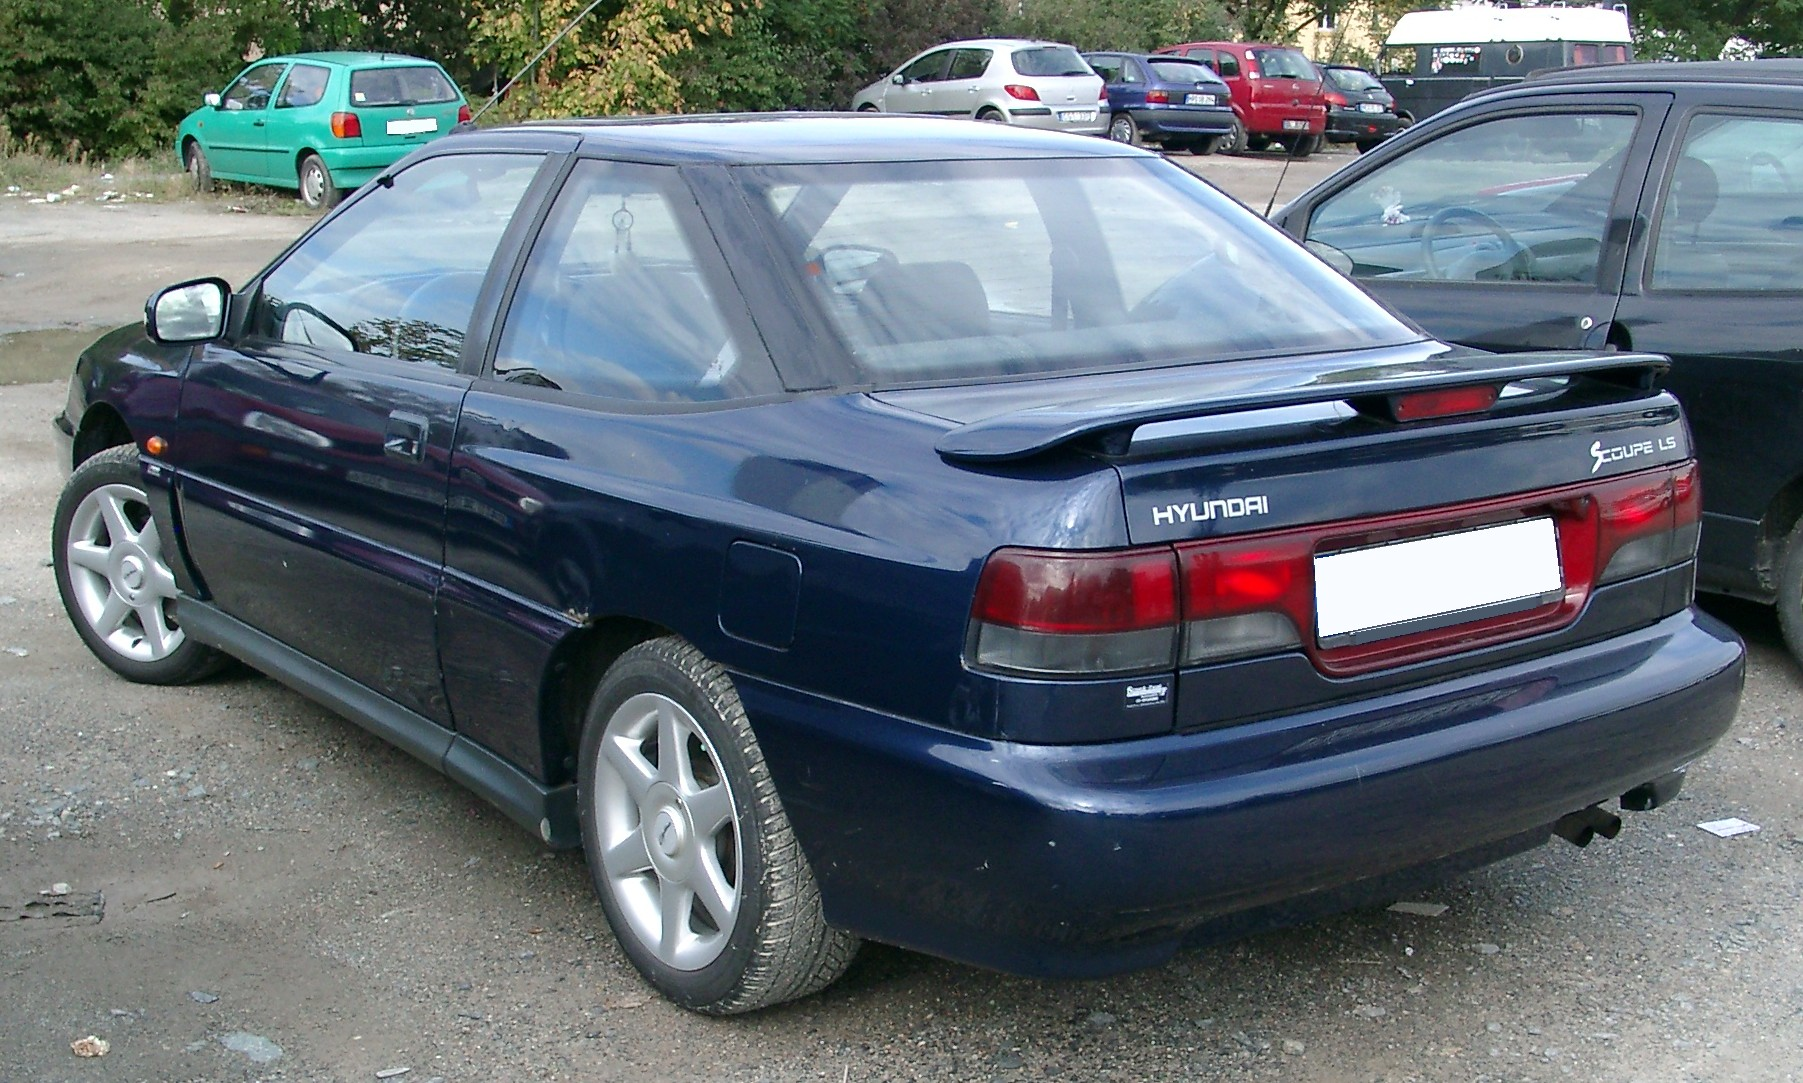 Hyundai S-Coupé photo 02